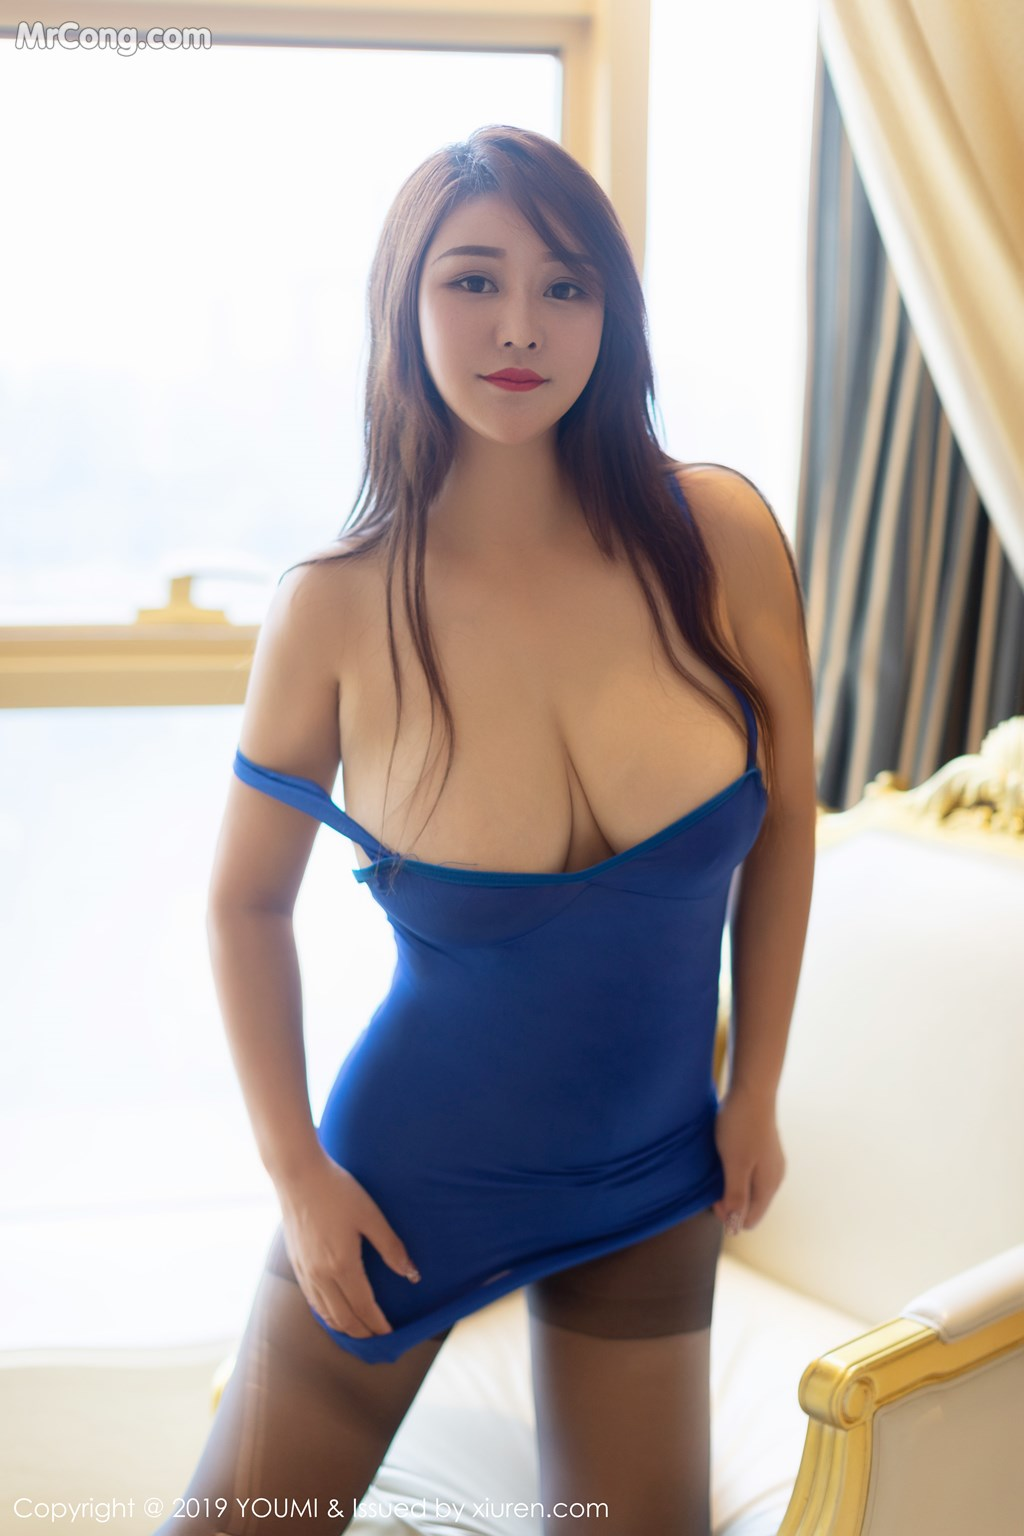 Image YouMi-Vol.341-ber-MrCong.com-010 in post YouMi Vol.341: 潘琳琳ber (56 ảnh)